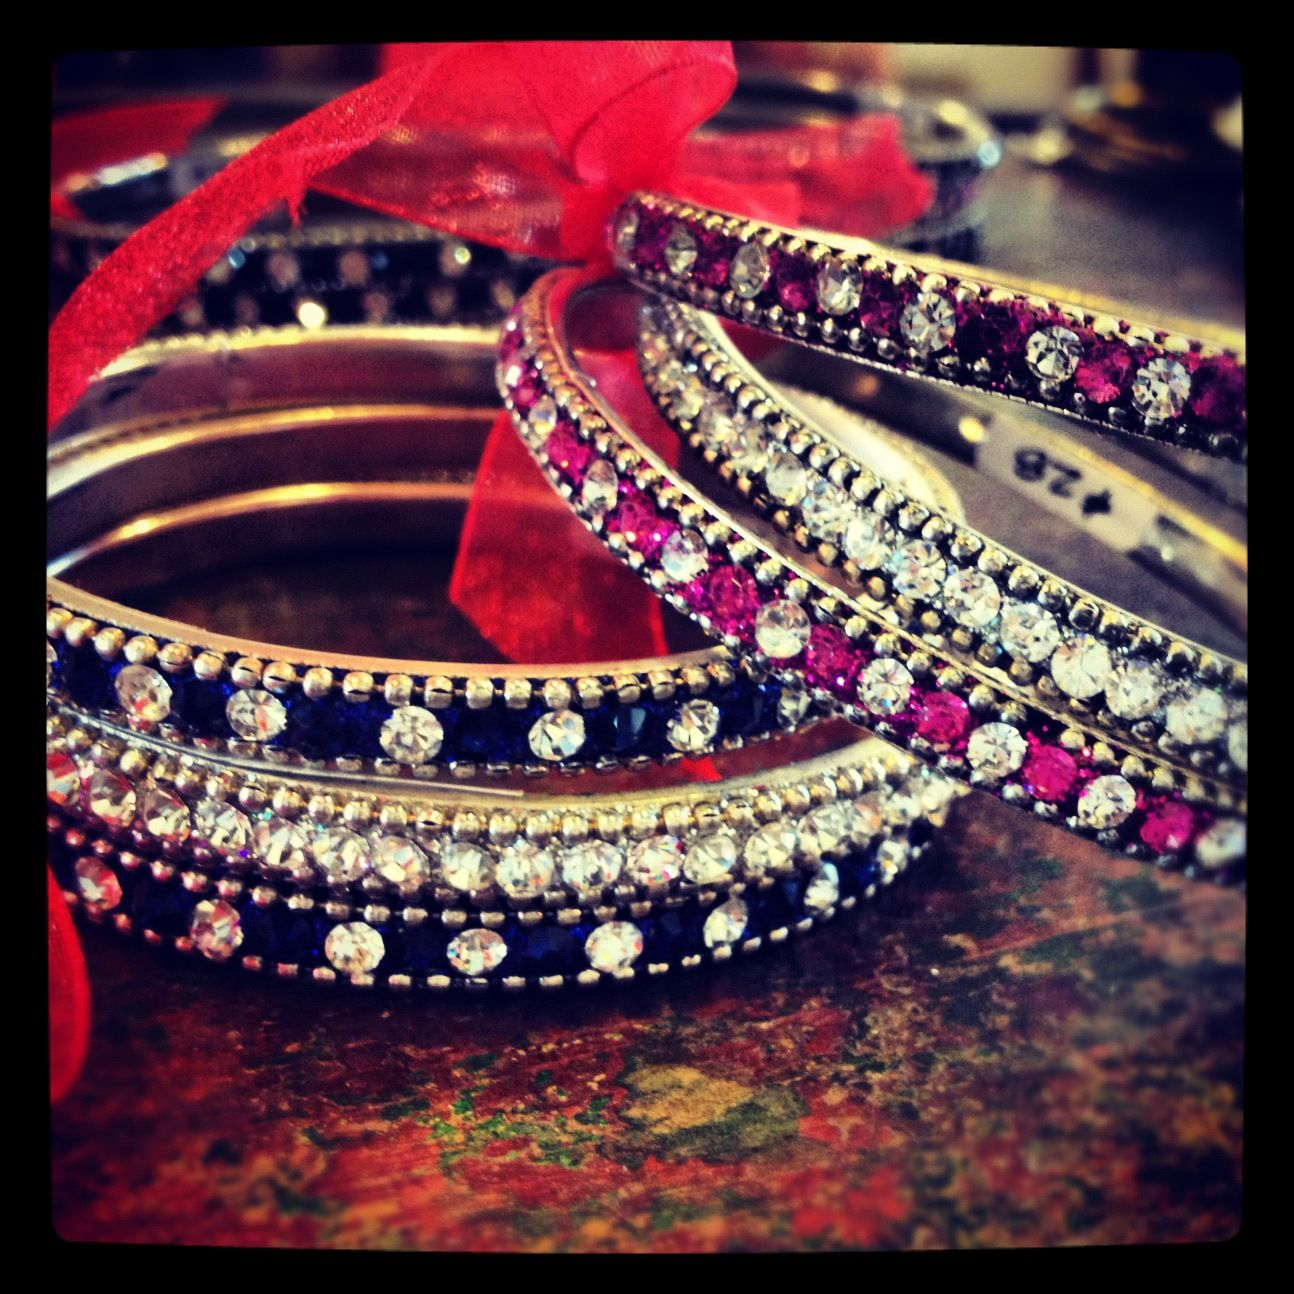 Rajasthani Lac Jewellery Bling Bangle Packs For The Holidays Bangle Bar